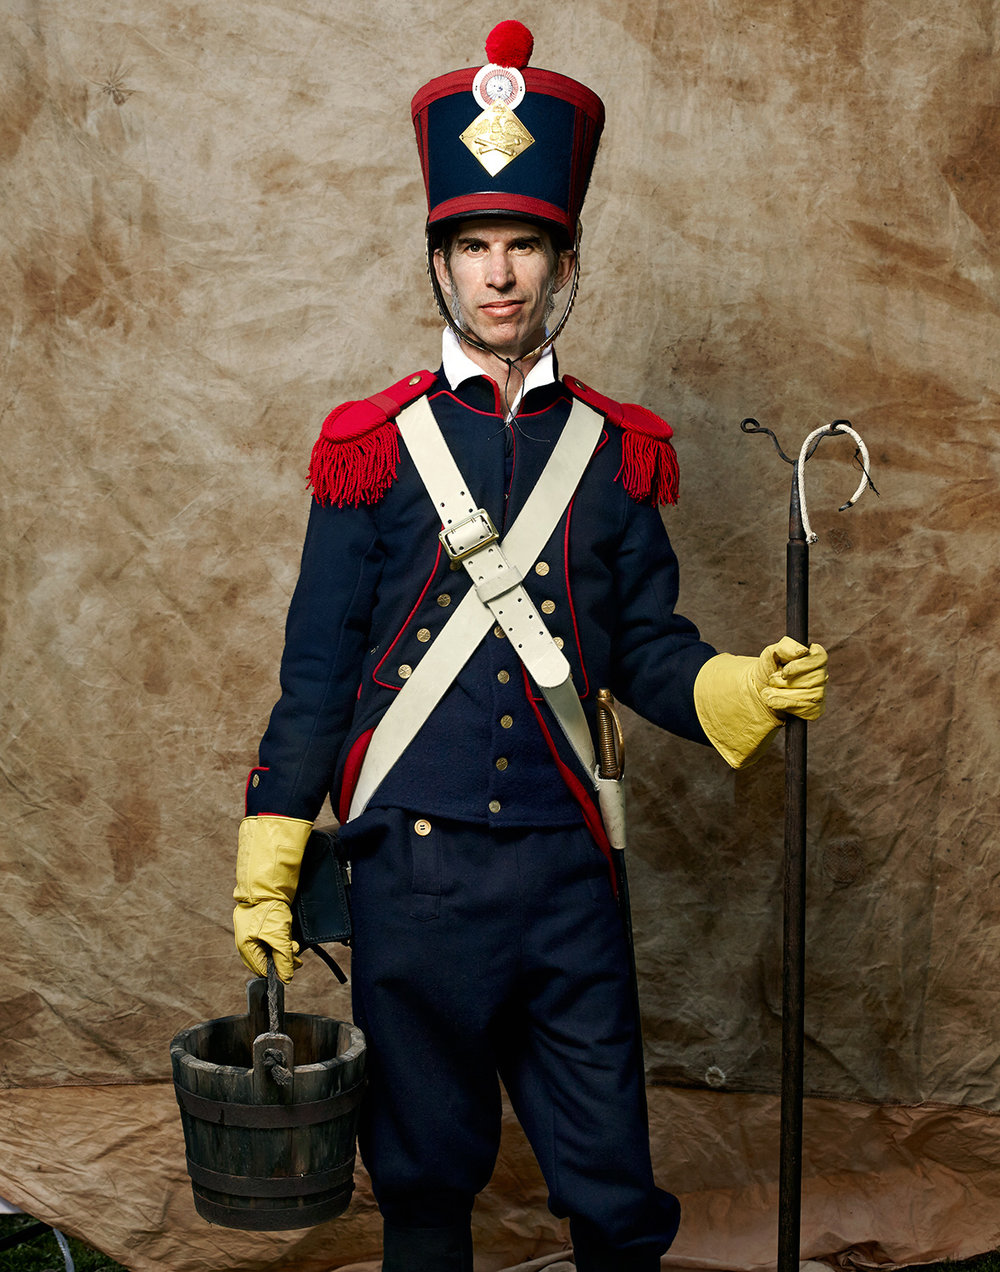 Philip - Napoleonic Re-enactor